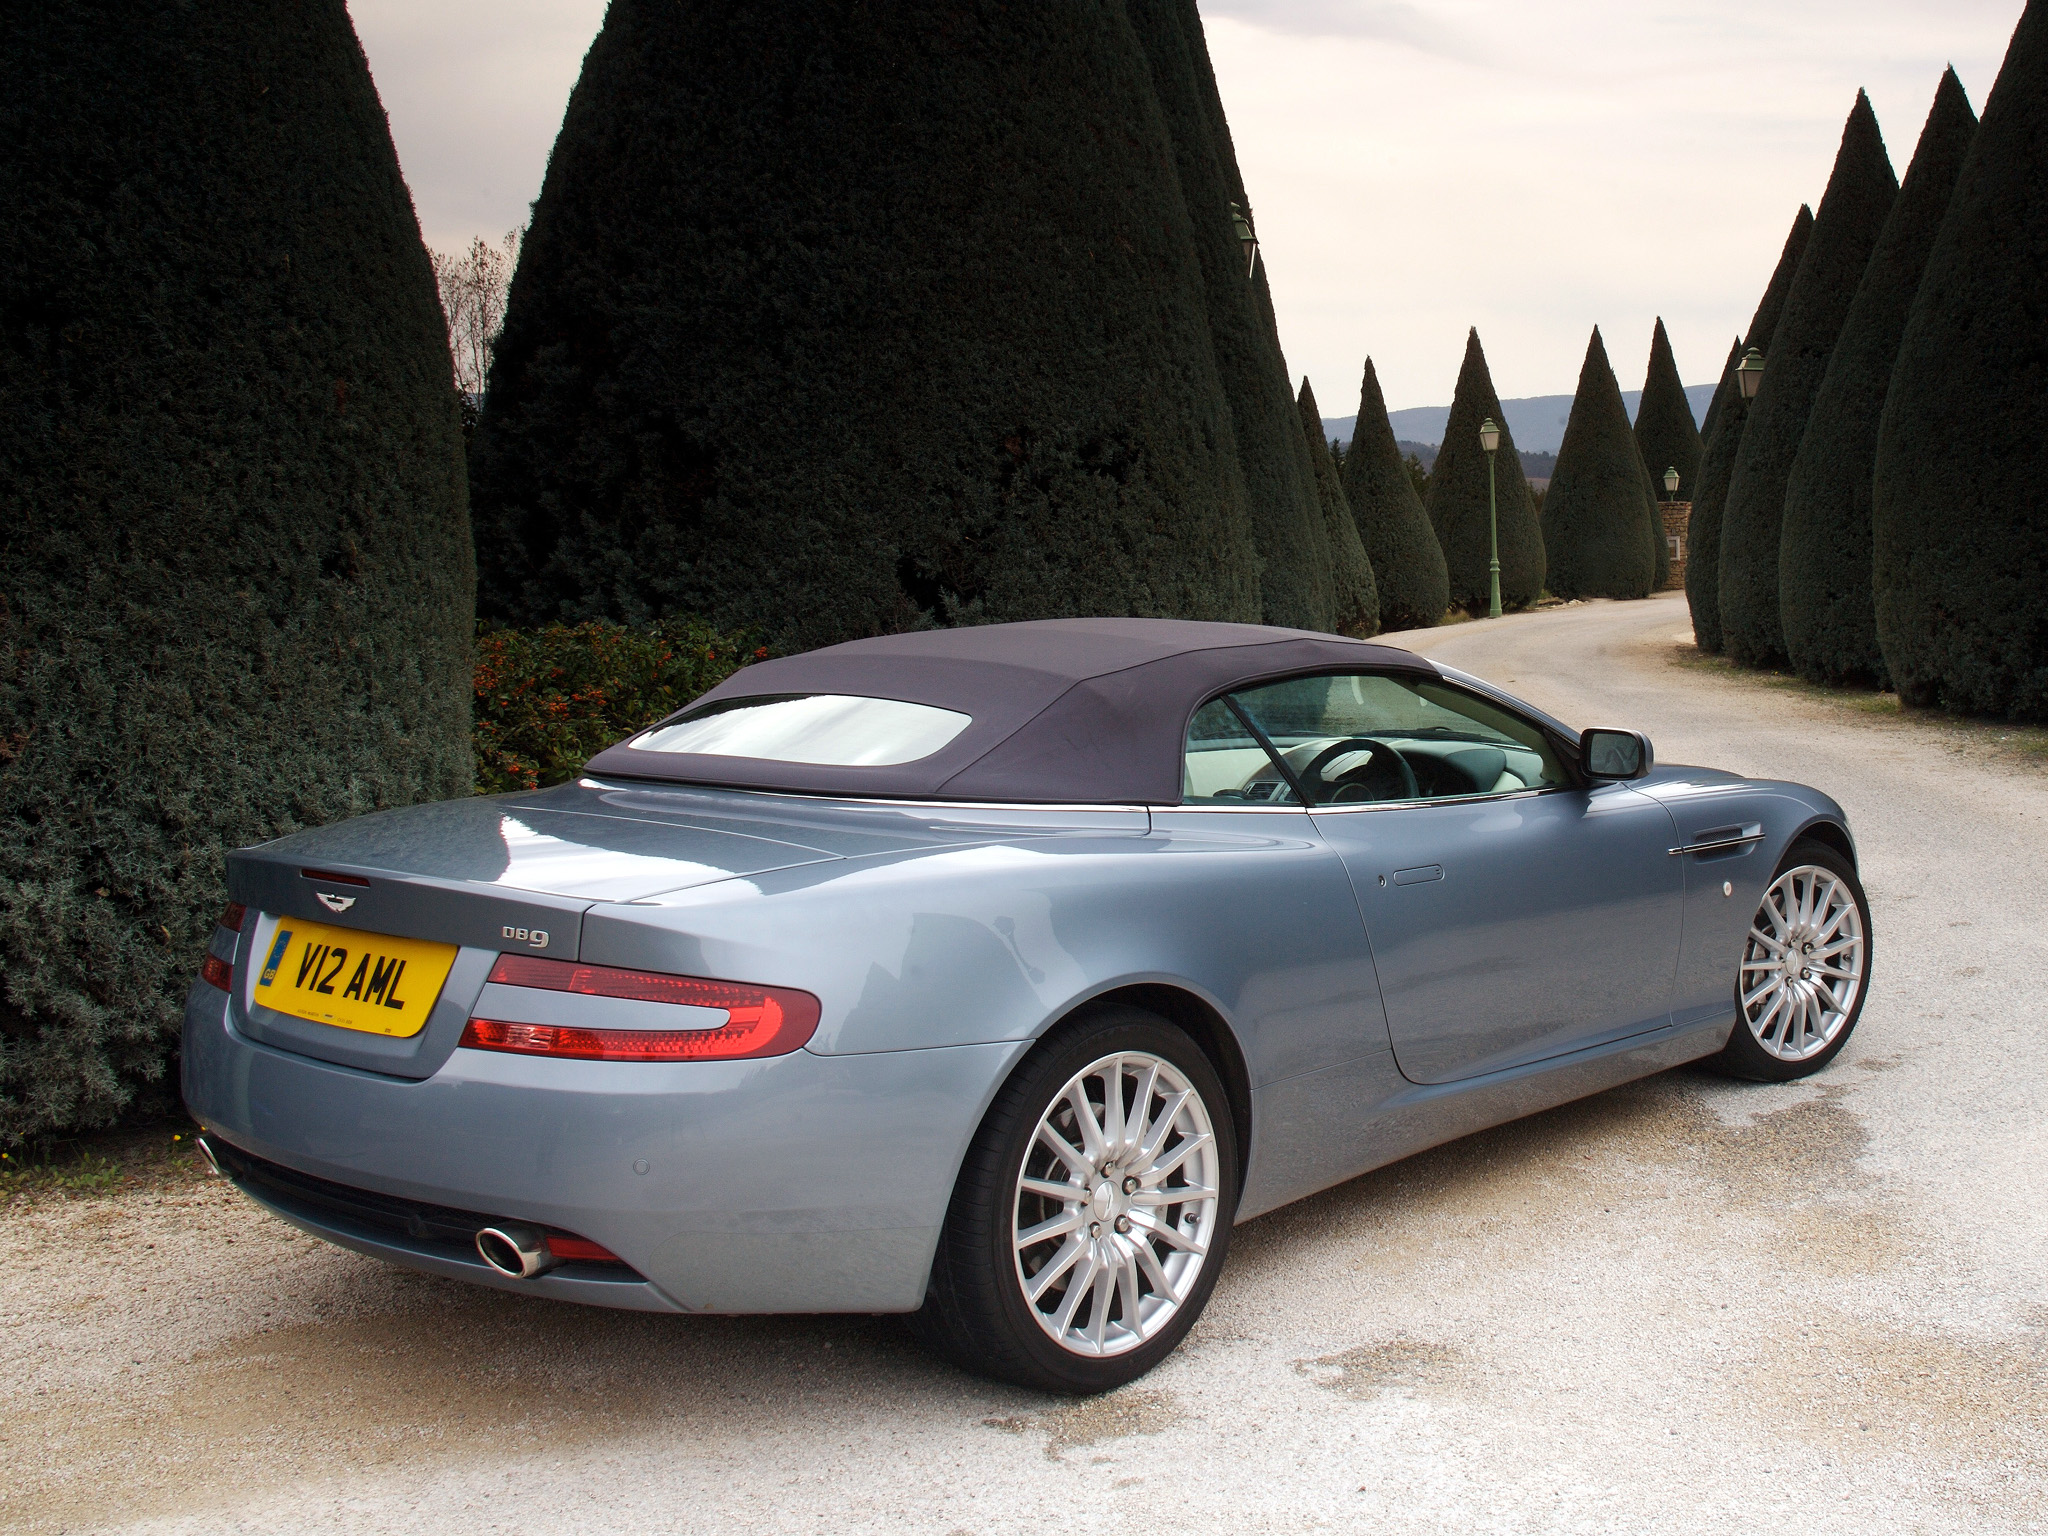 2004 Aston Martin DB9 Volante photo - 2